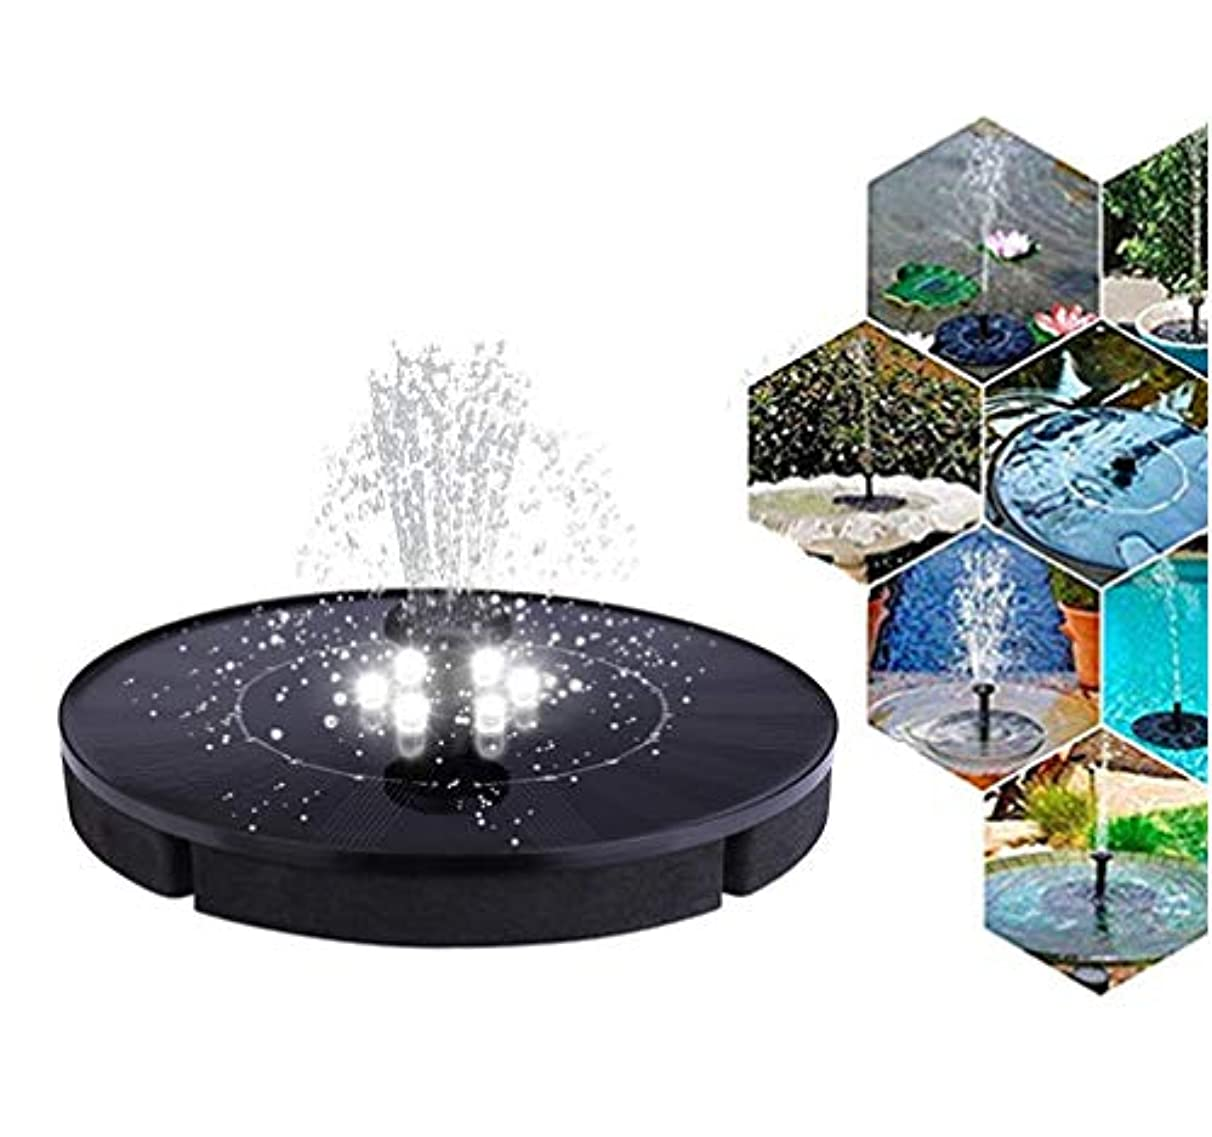 Solar Powered Fountain With lamp,Portable night light Water Fountain,Solar Powered Bird Bath Fountain Pump,Submersible Solar Water Pump Kit for Small Pond, Pool and Garden Decoration (7.08×7.08in)